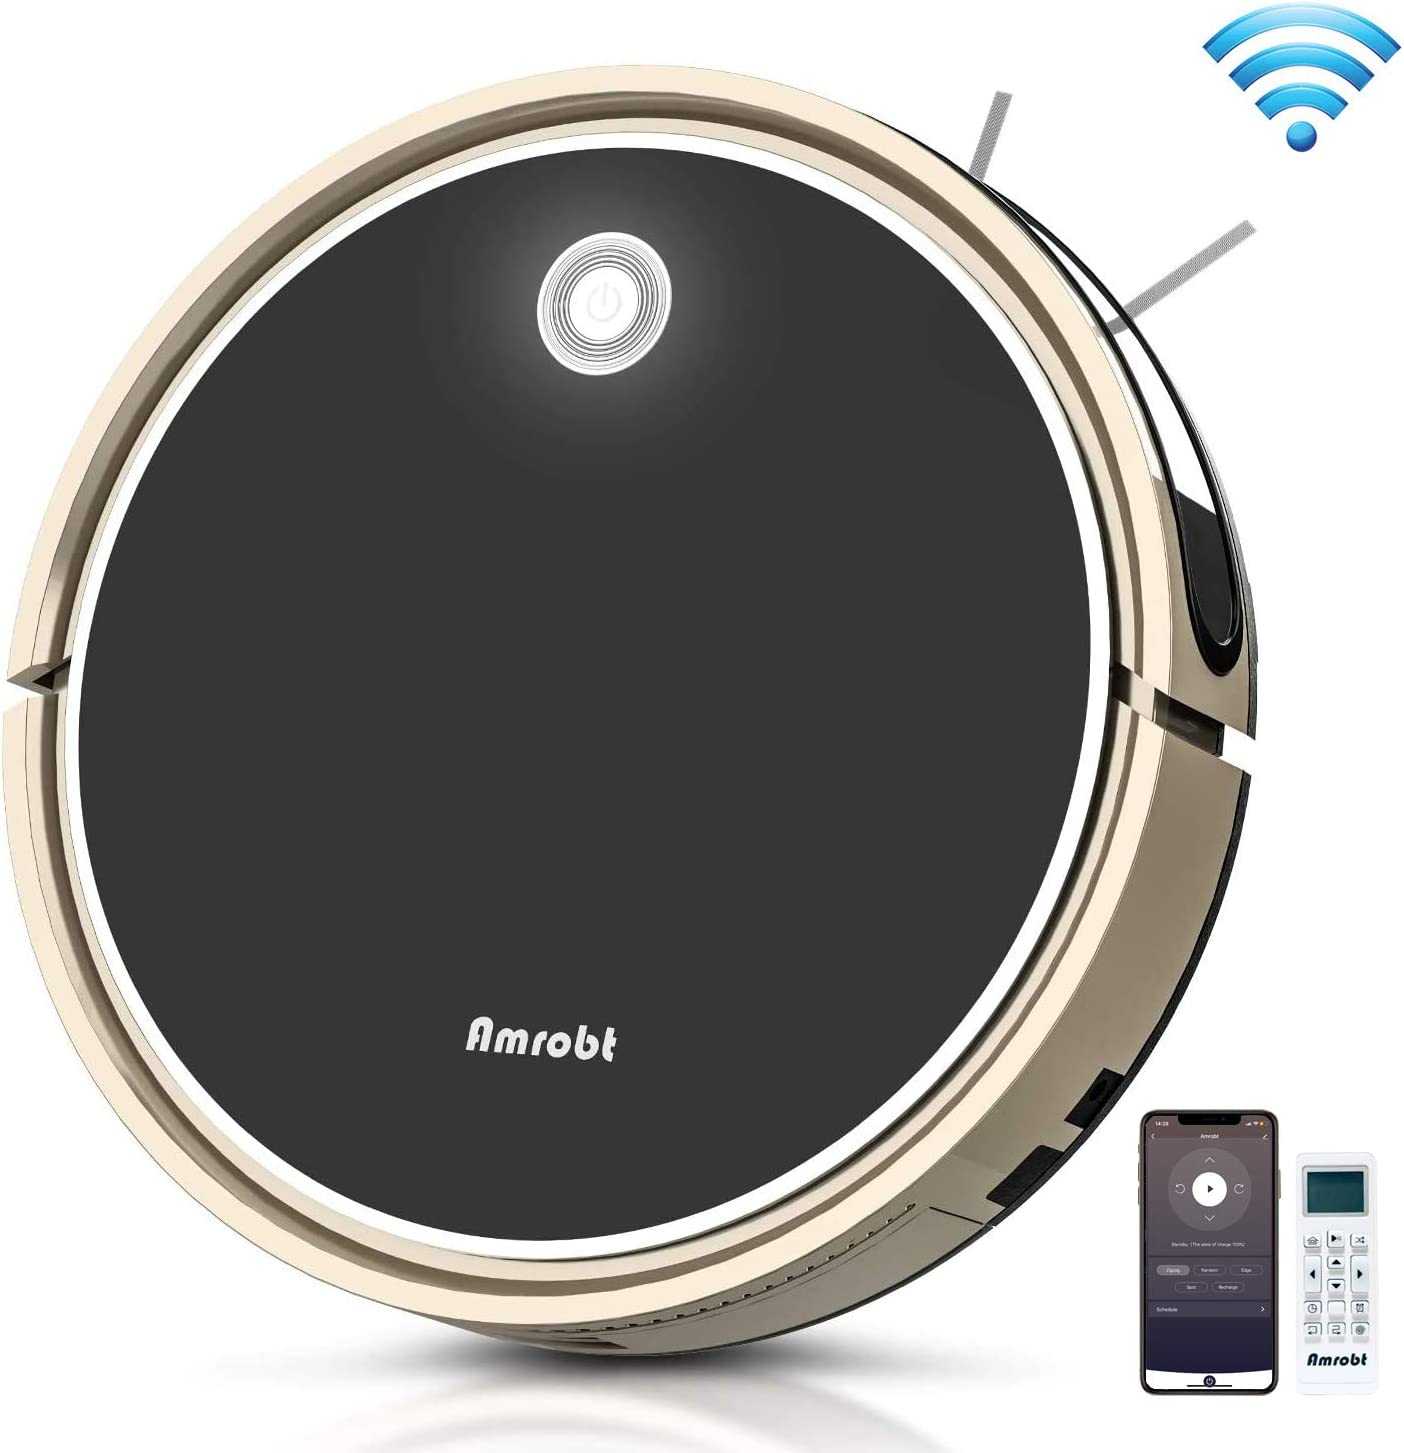 Amrobt Robotic Vacuum Cleaner, 2 in 1 Robot Vacuum and Mop, Wi-Fi Connected/Remote Control, 1600Pa Strong Suction, Self-Charging Robot Vacuum Cleaner for Carpet & Hard Floors